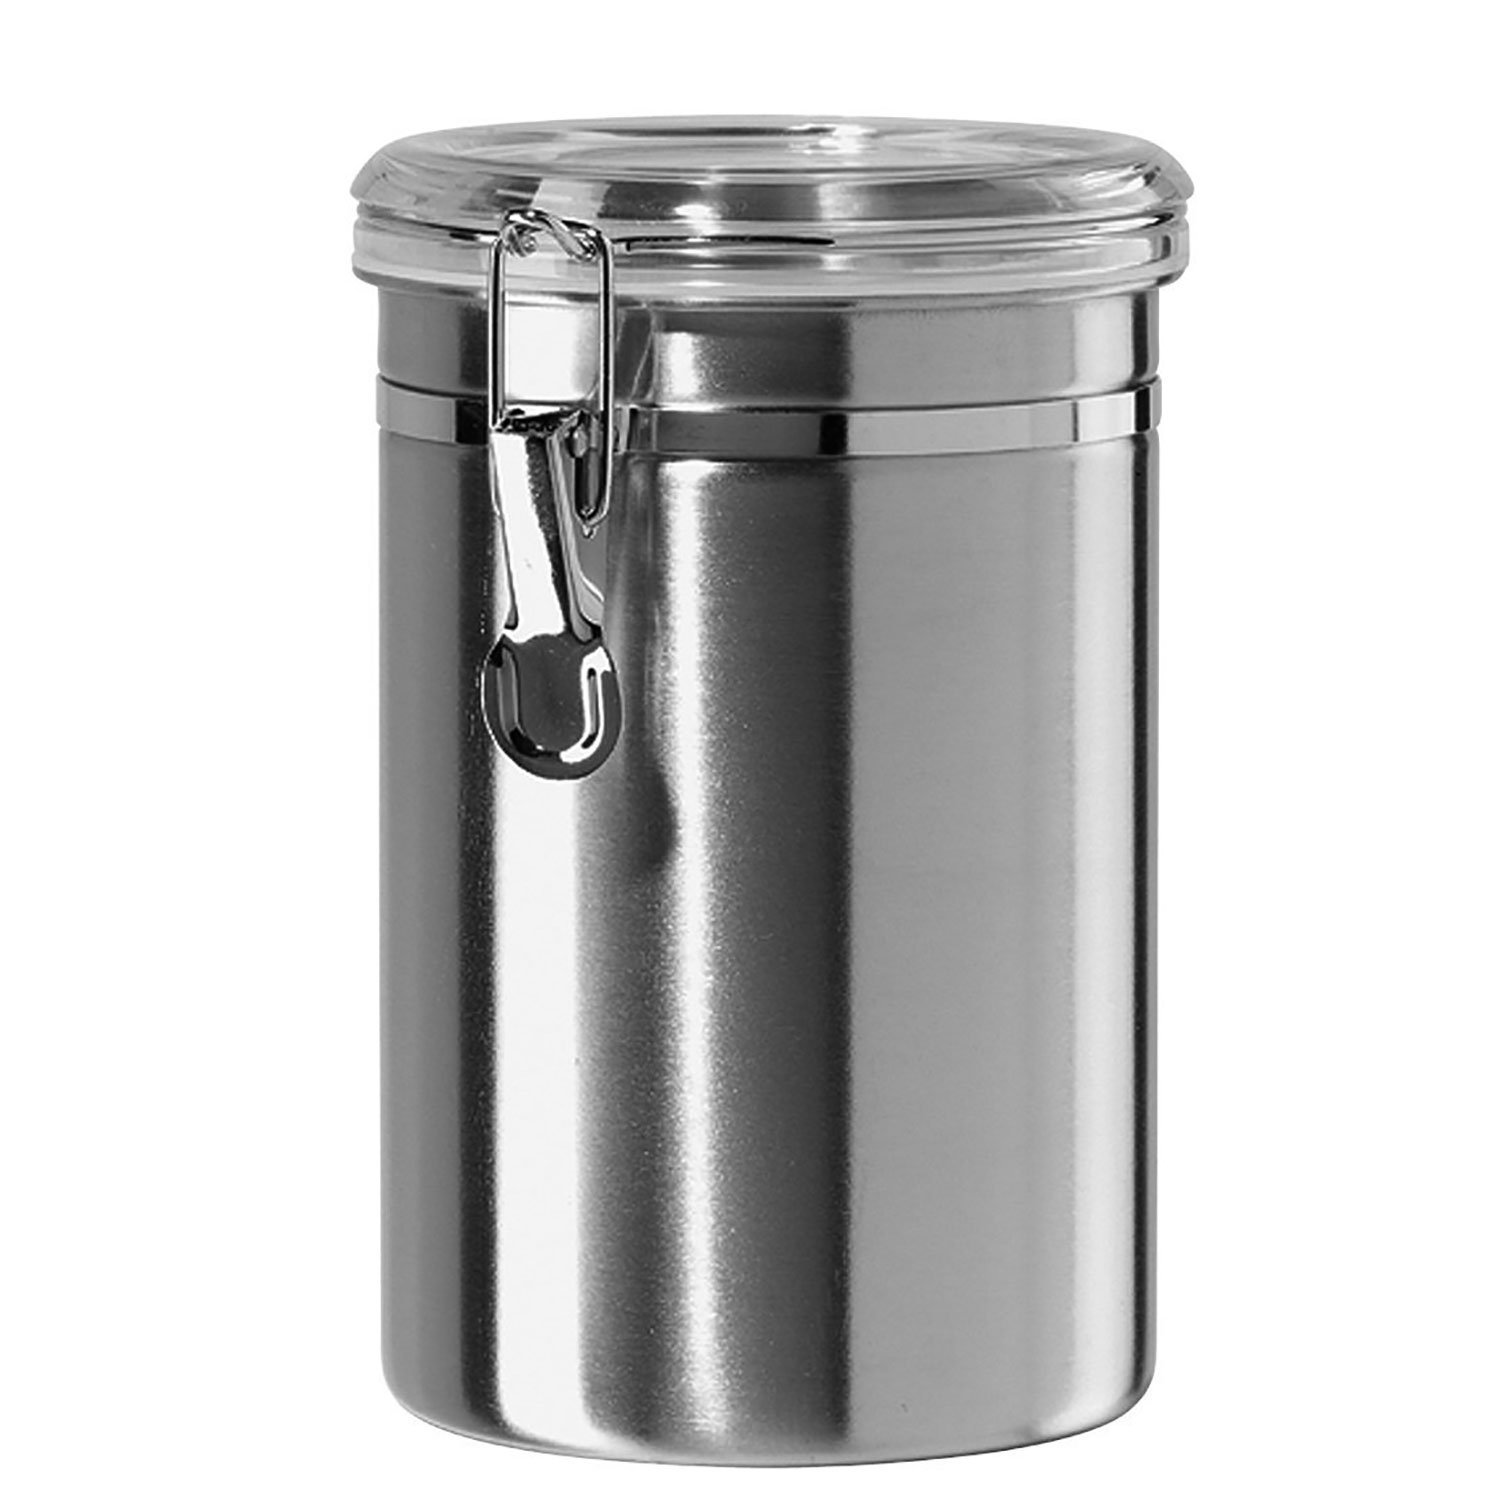 Canister Set Stainless Steel - Beautiful Canisters for Kitchen Counter, 64oz Medium, with Airtight Lids, Food Storage Container, Tea Coffee Sugar Flour Canisters by SilverOnyx - Medium 64oz - 1 Piece